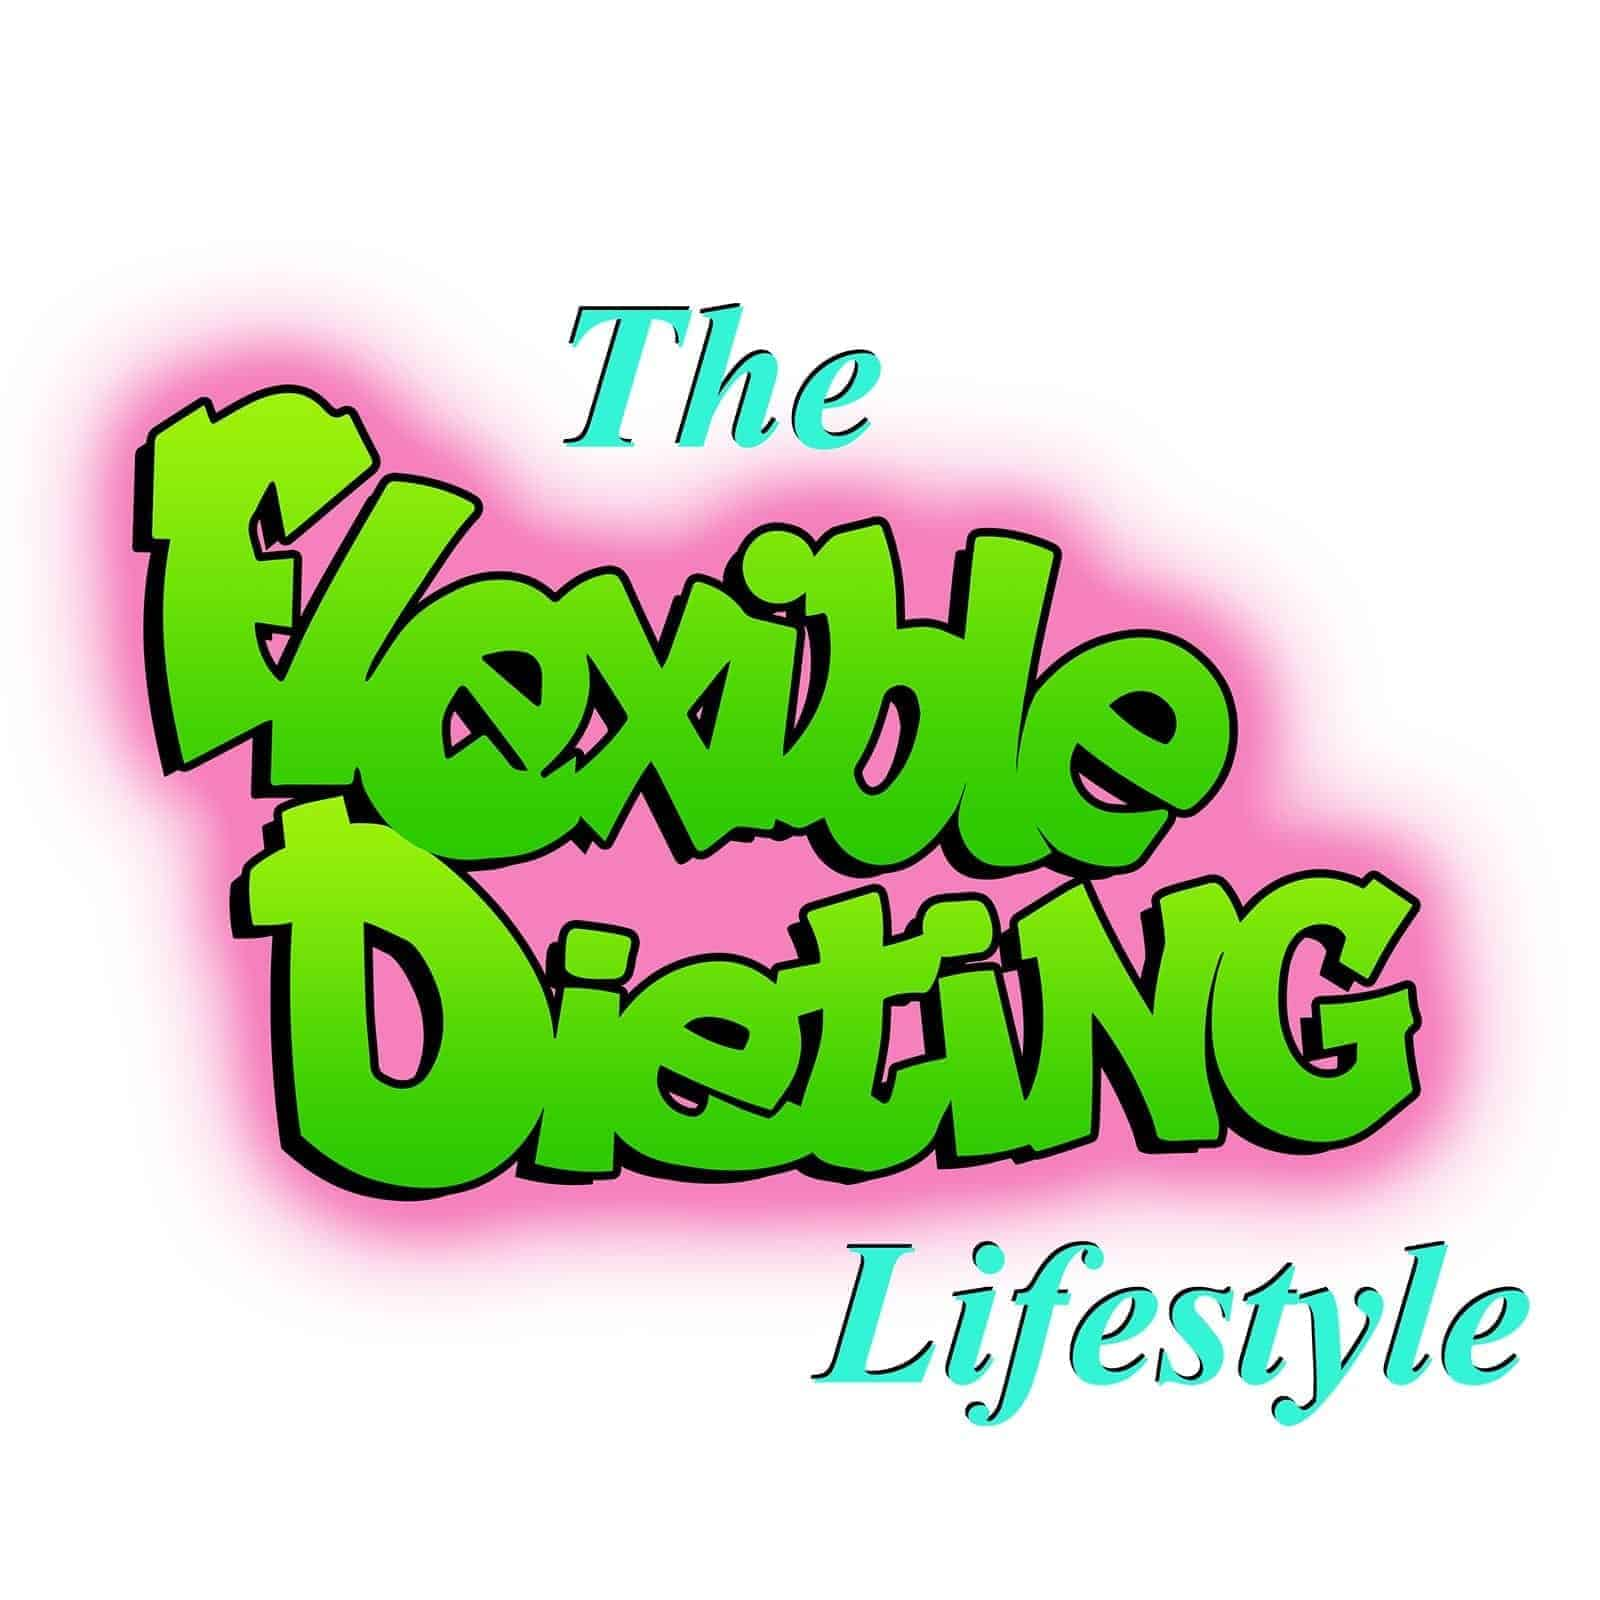 The Flexible Dieting Lifestyle Fresh Prince Alternate Logo